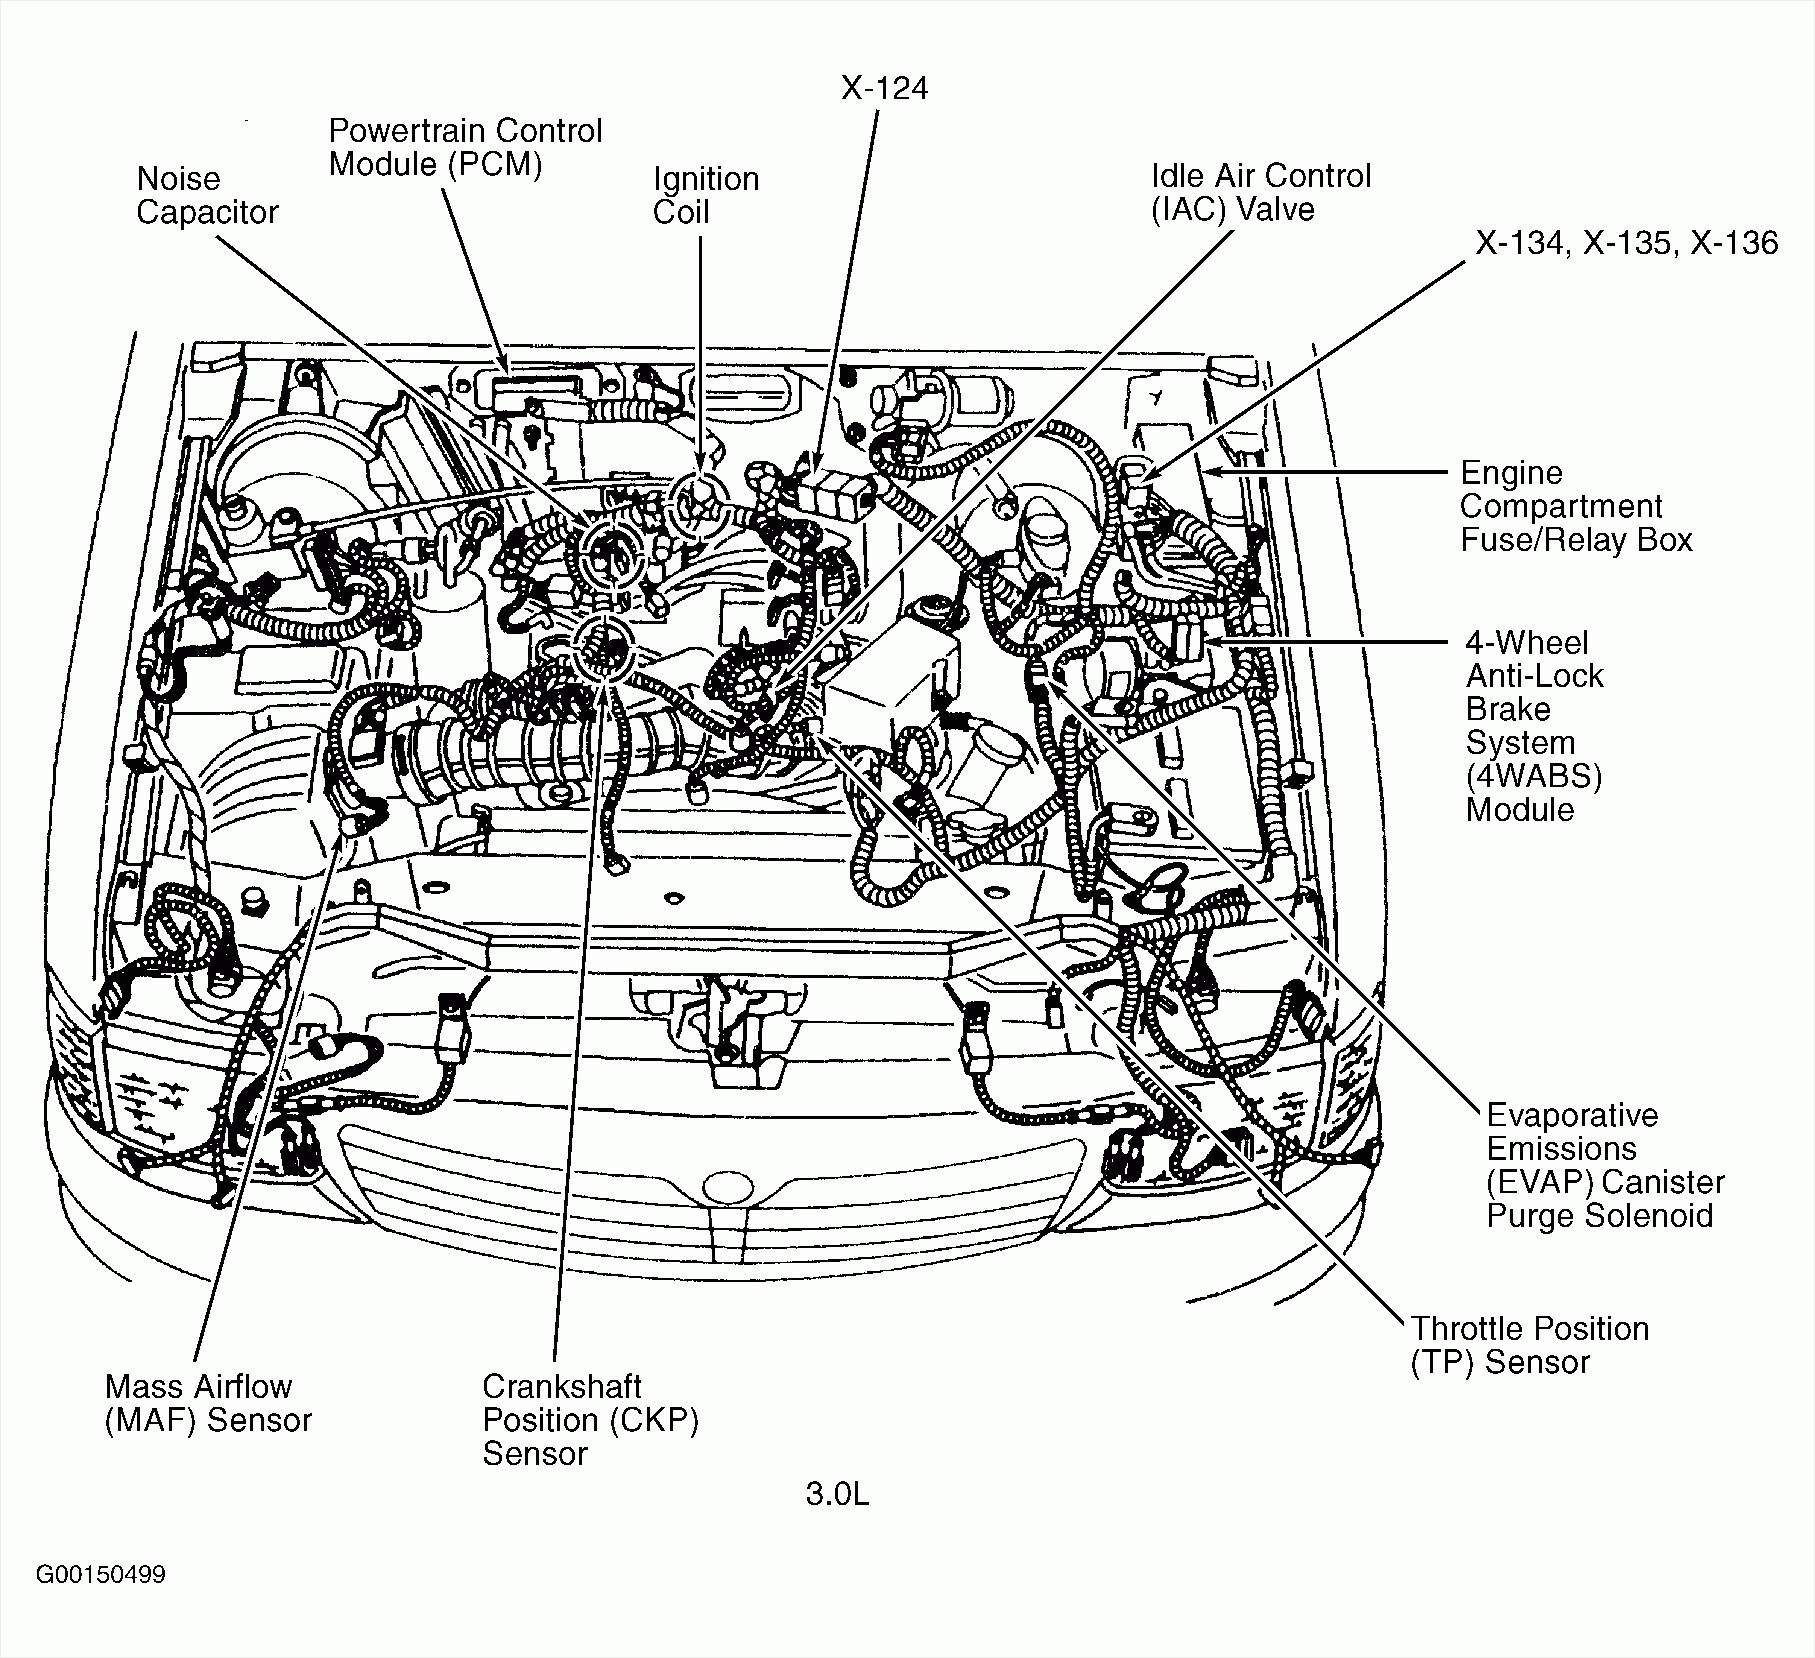 2004 ford Ranger Engine Diagram My Wiring DIagram